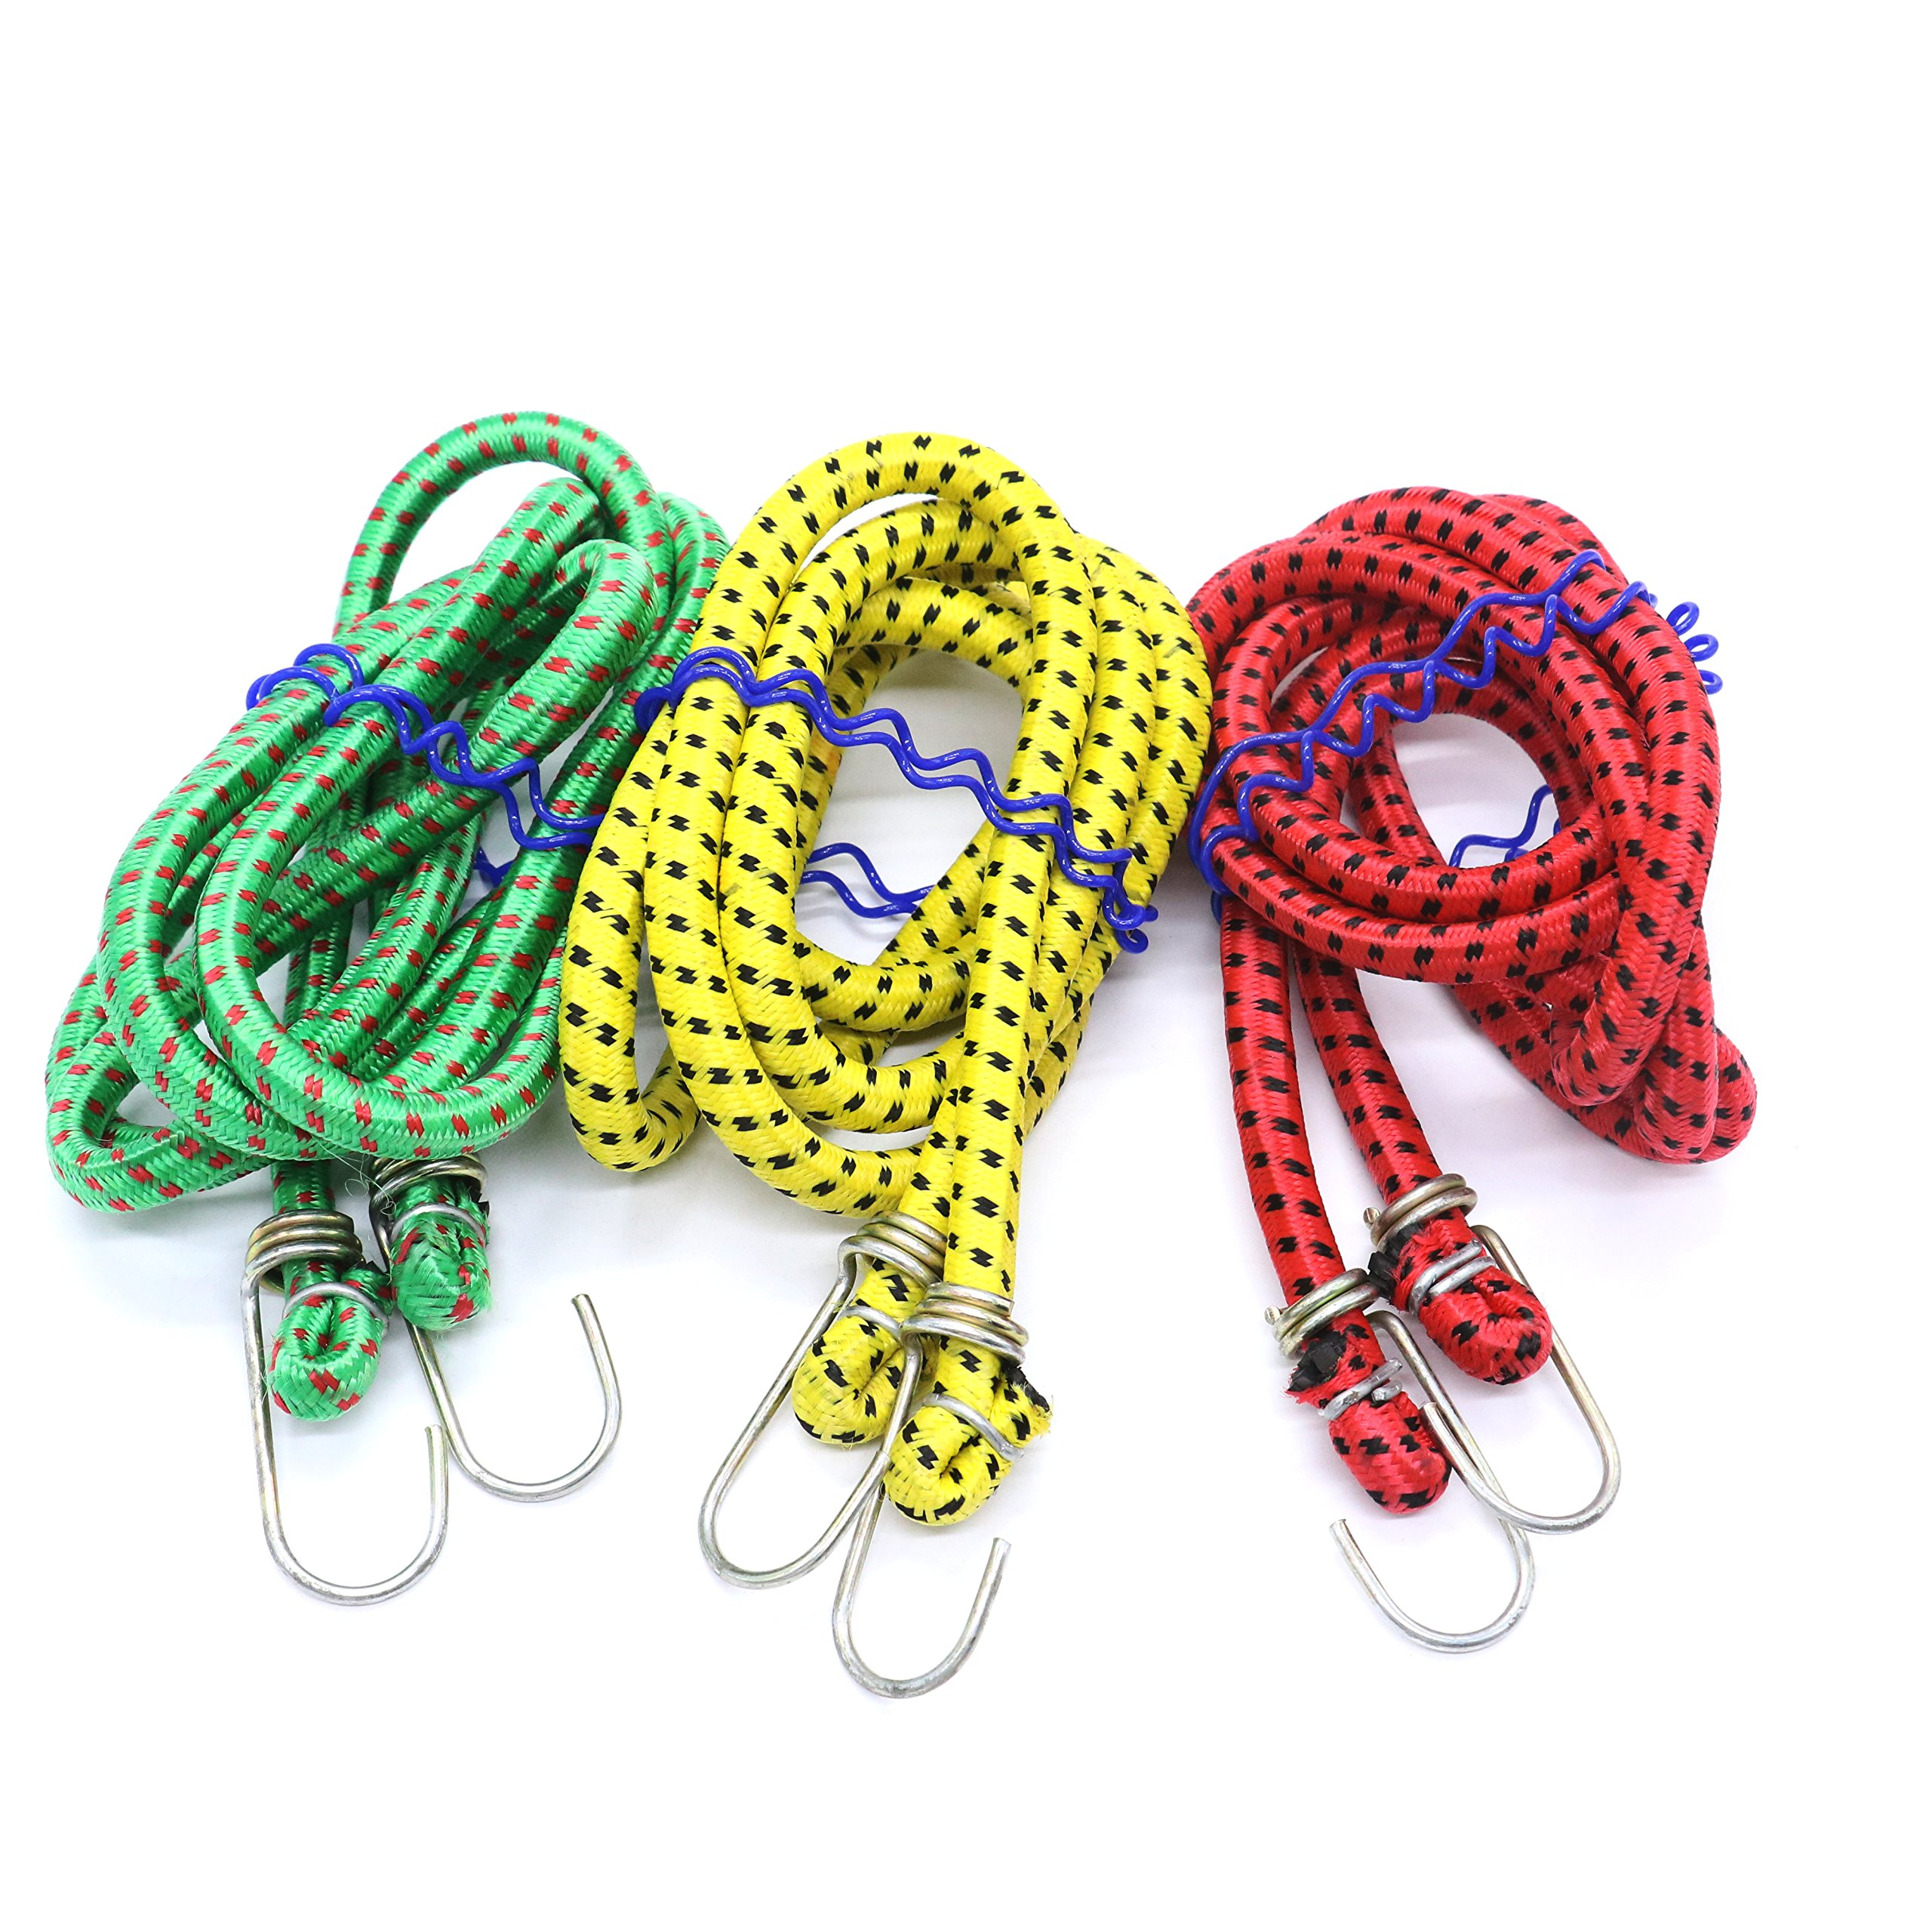 Bungee Cord, 3 Pack 6 Feet Long Bungee Cord with Galvanized Steel Hooks by IDS